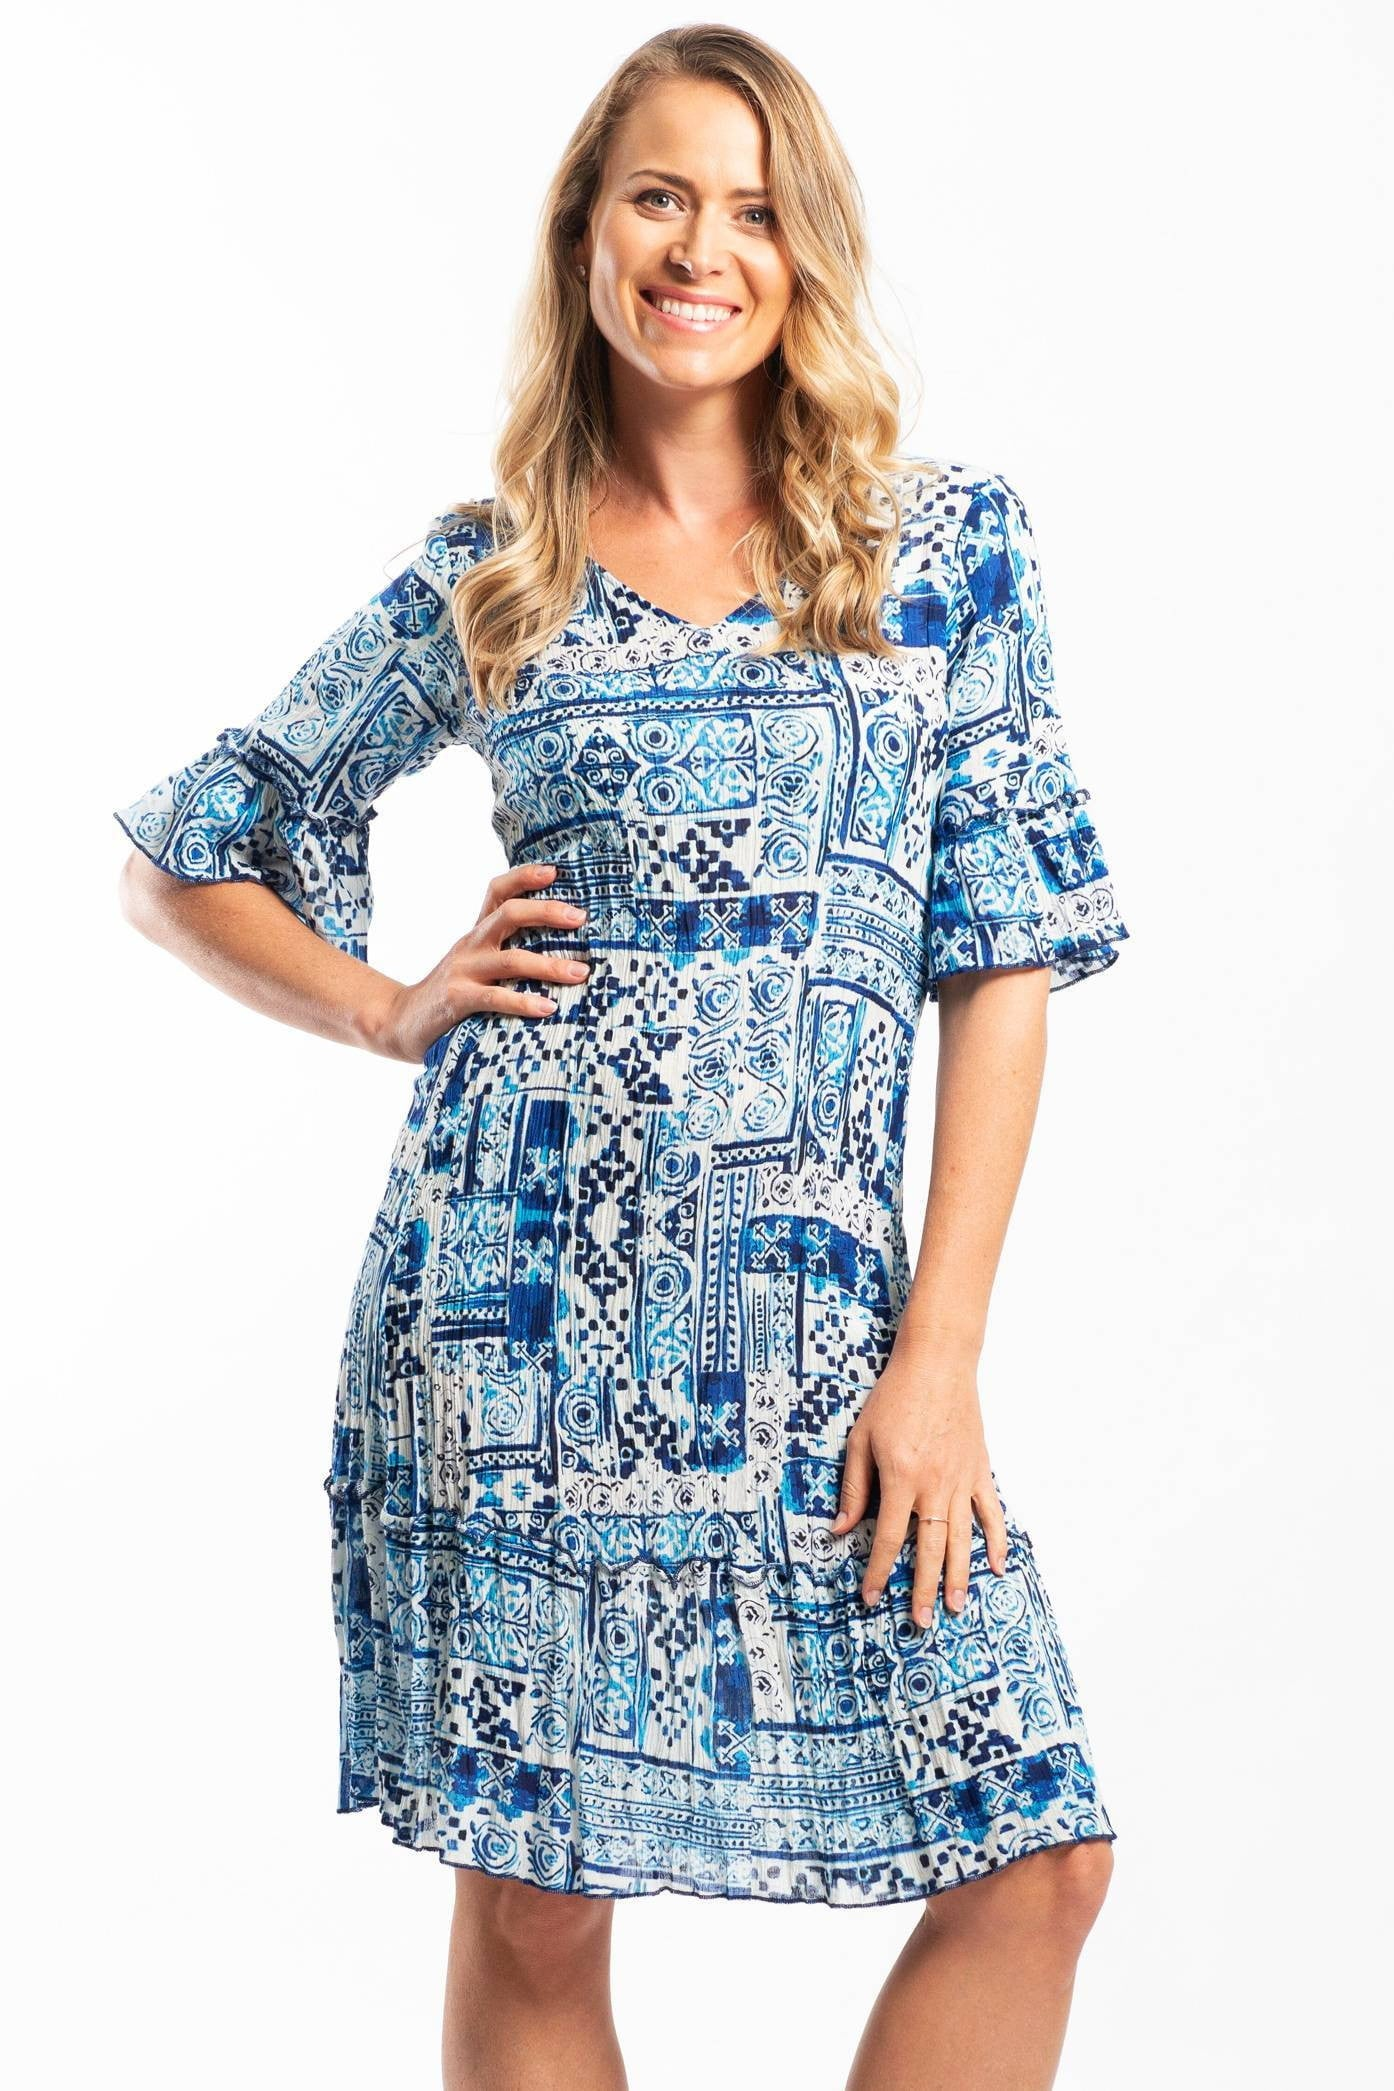 Ocean Waves Long Tunic Dress | I Love Tunics | Tunic Tops | Tunic | Tunic Dresses  | womens clothing online